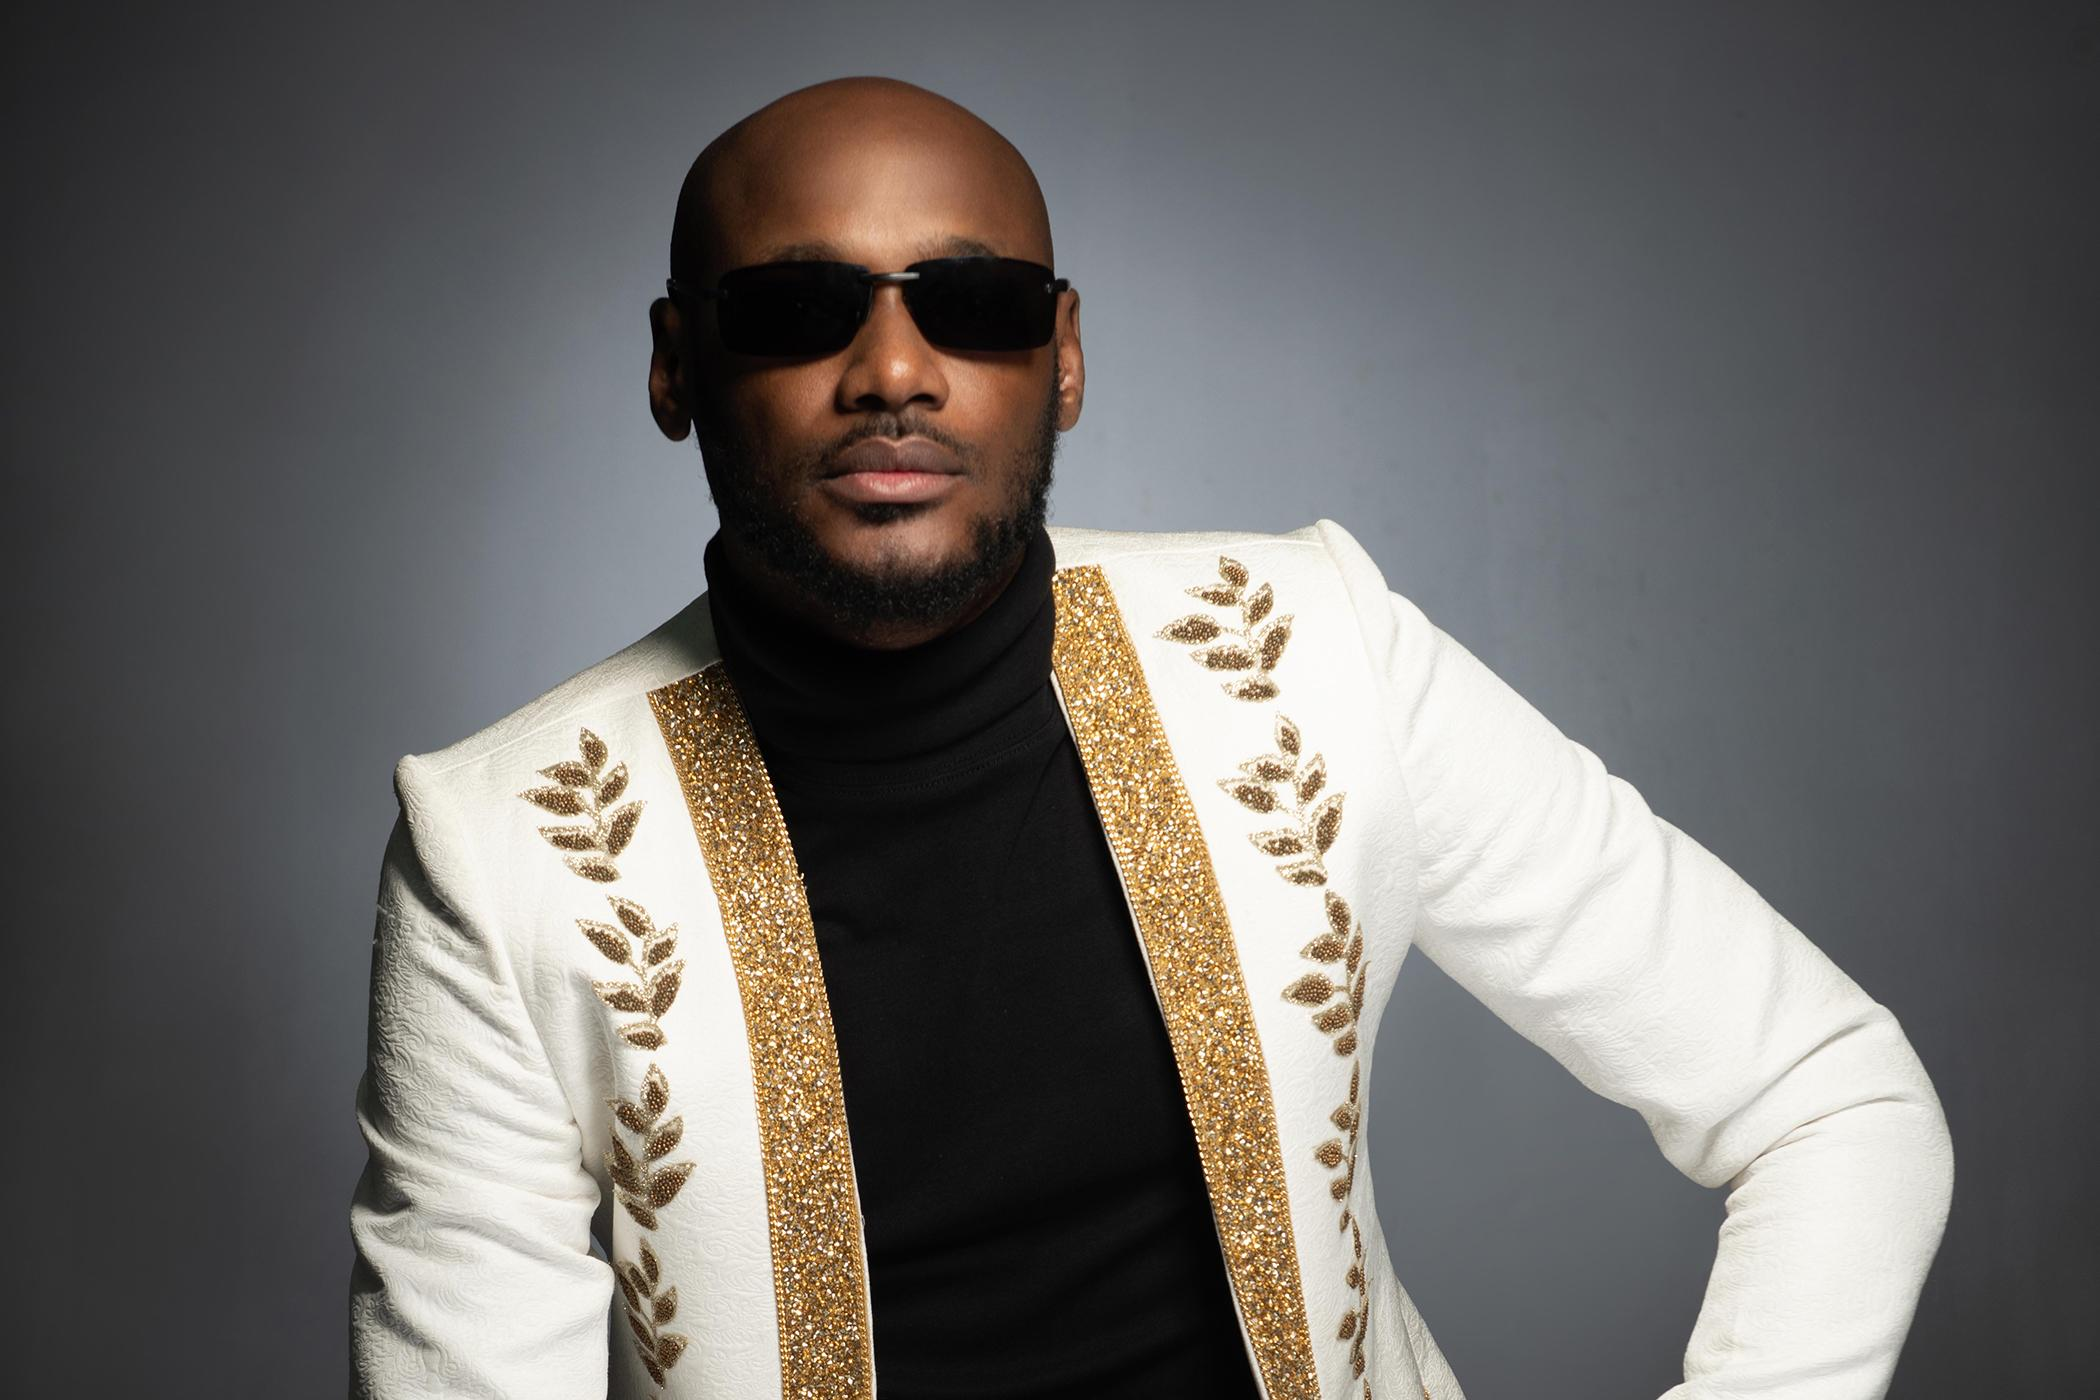 End SARS: Nigeria should be totally shut down, nobody should go to work – Tuface Idibia